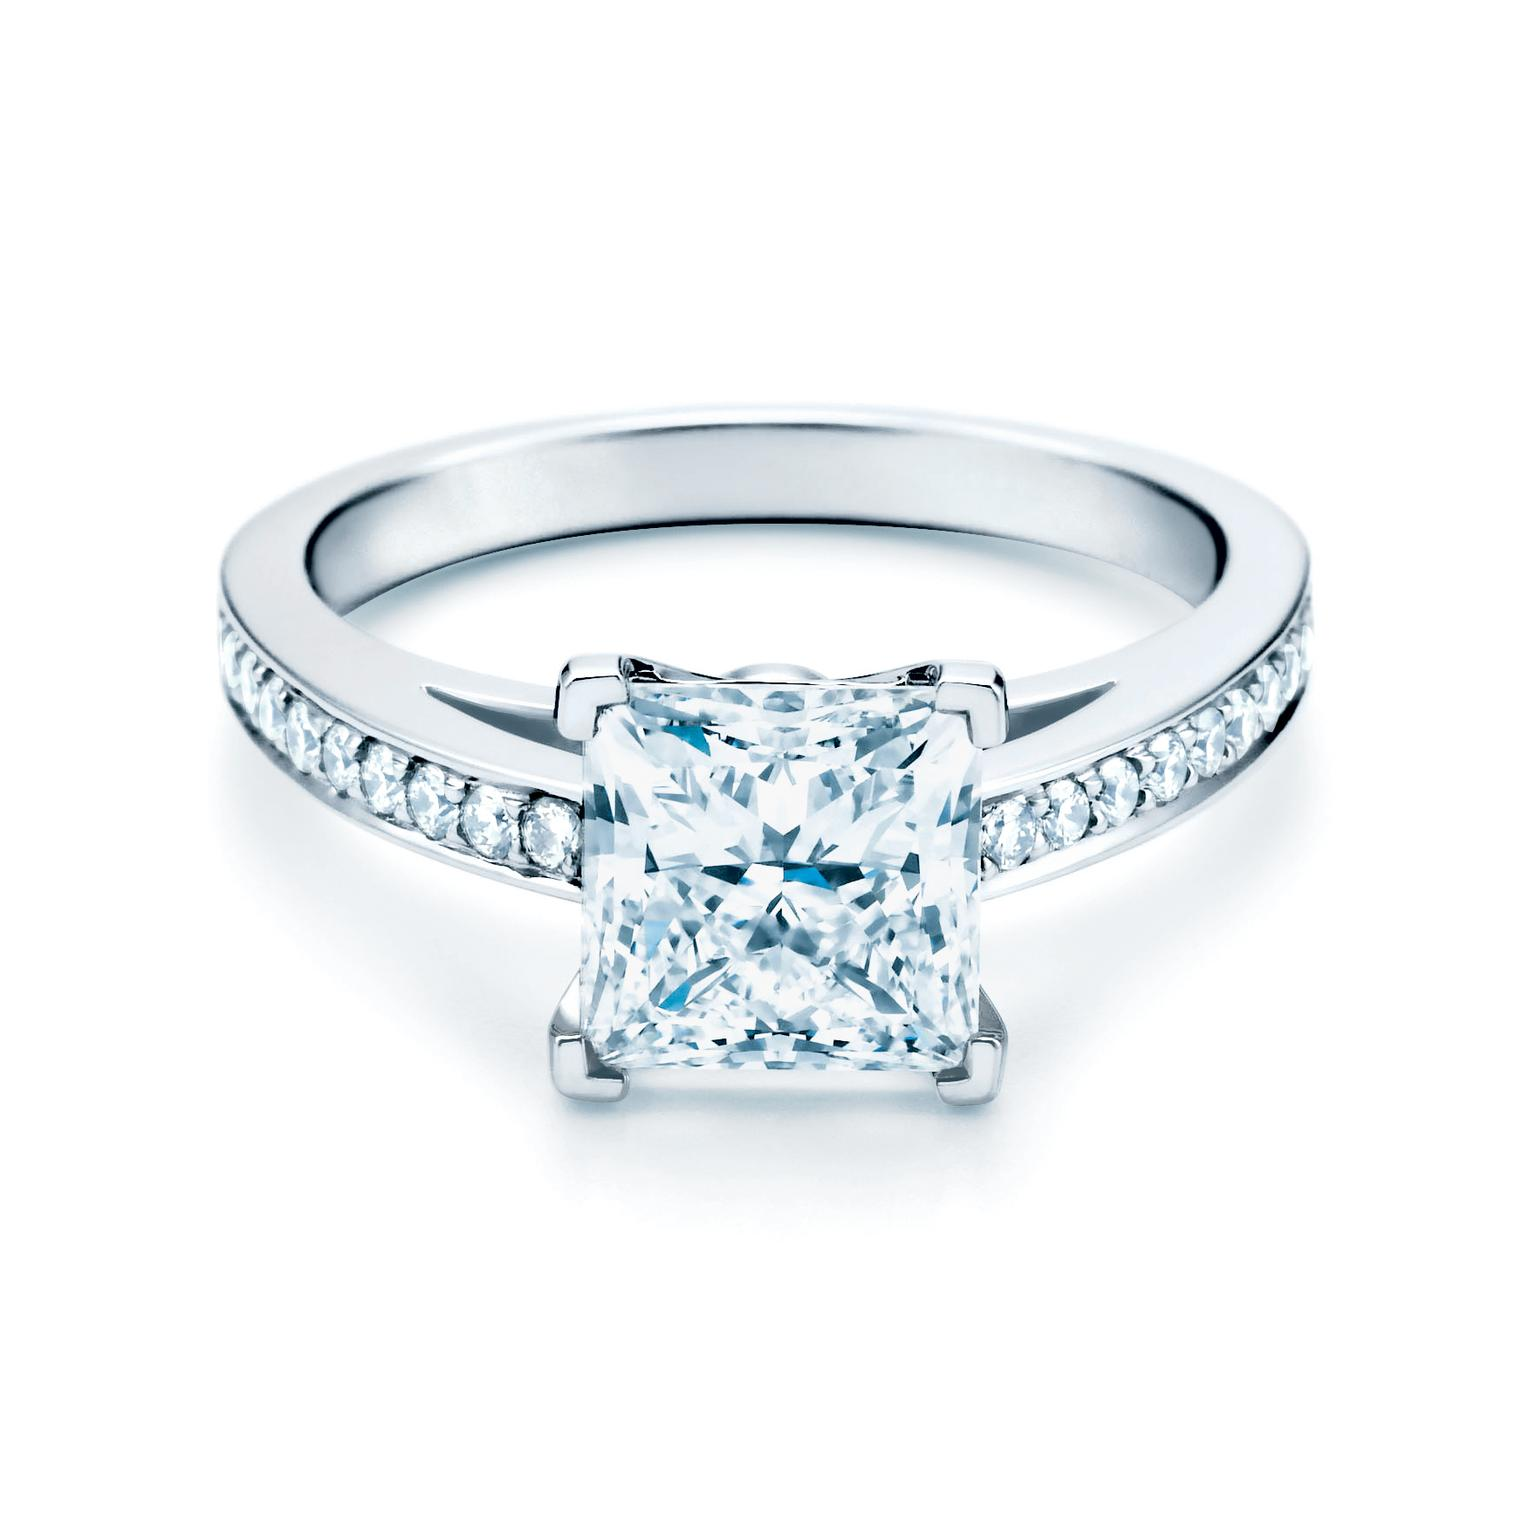 The Tiffany setting the iconic diamond engagement ring